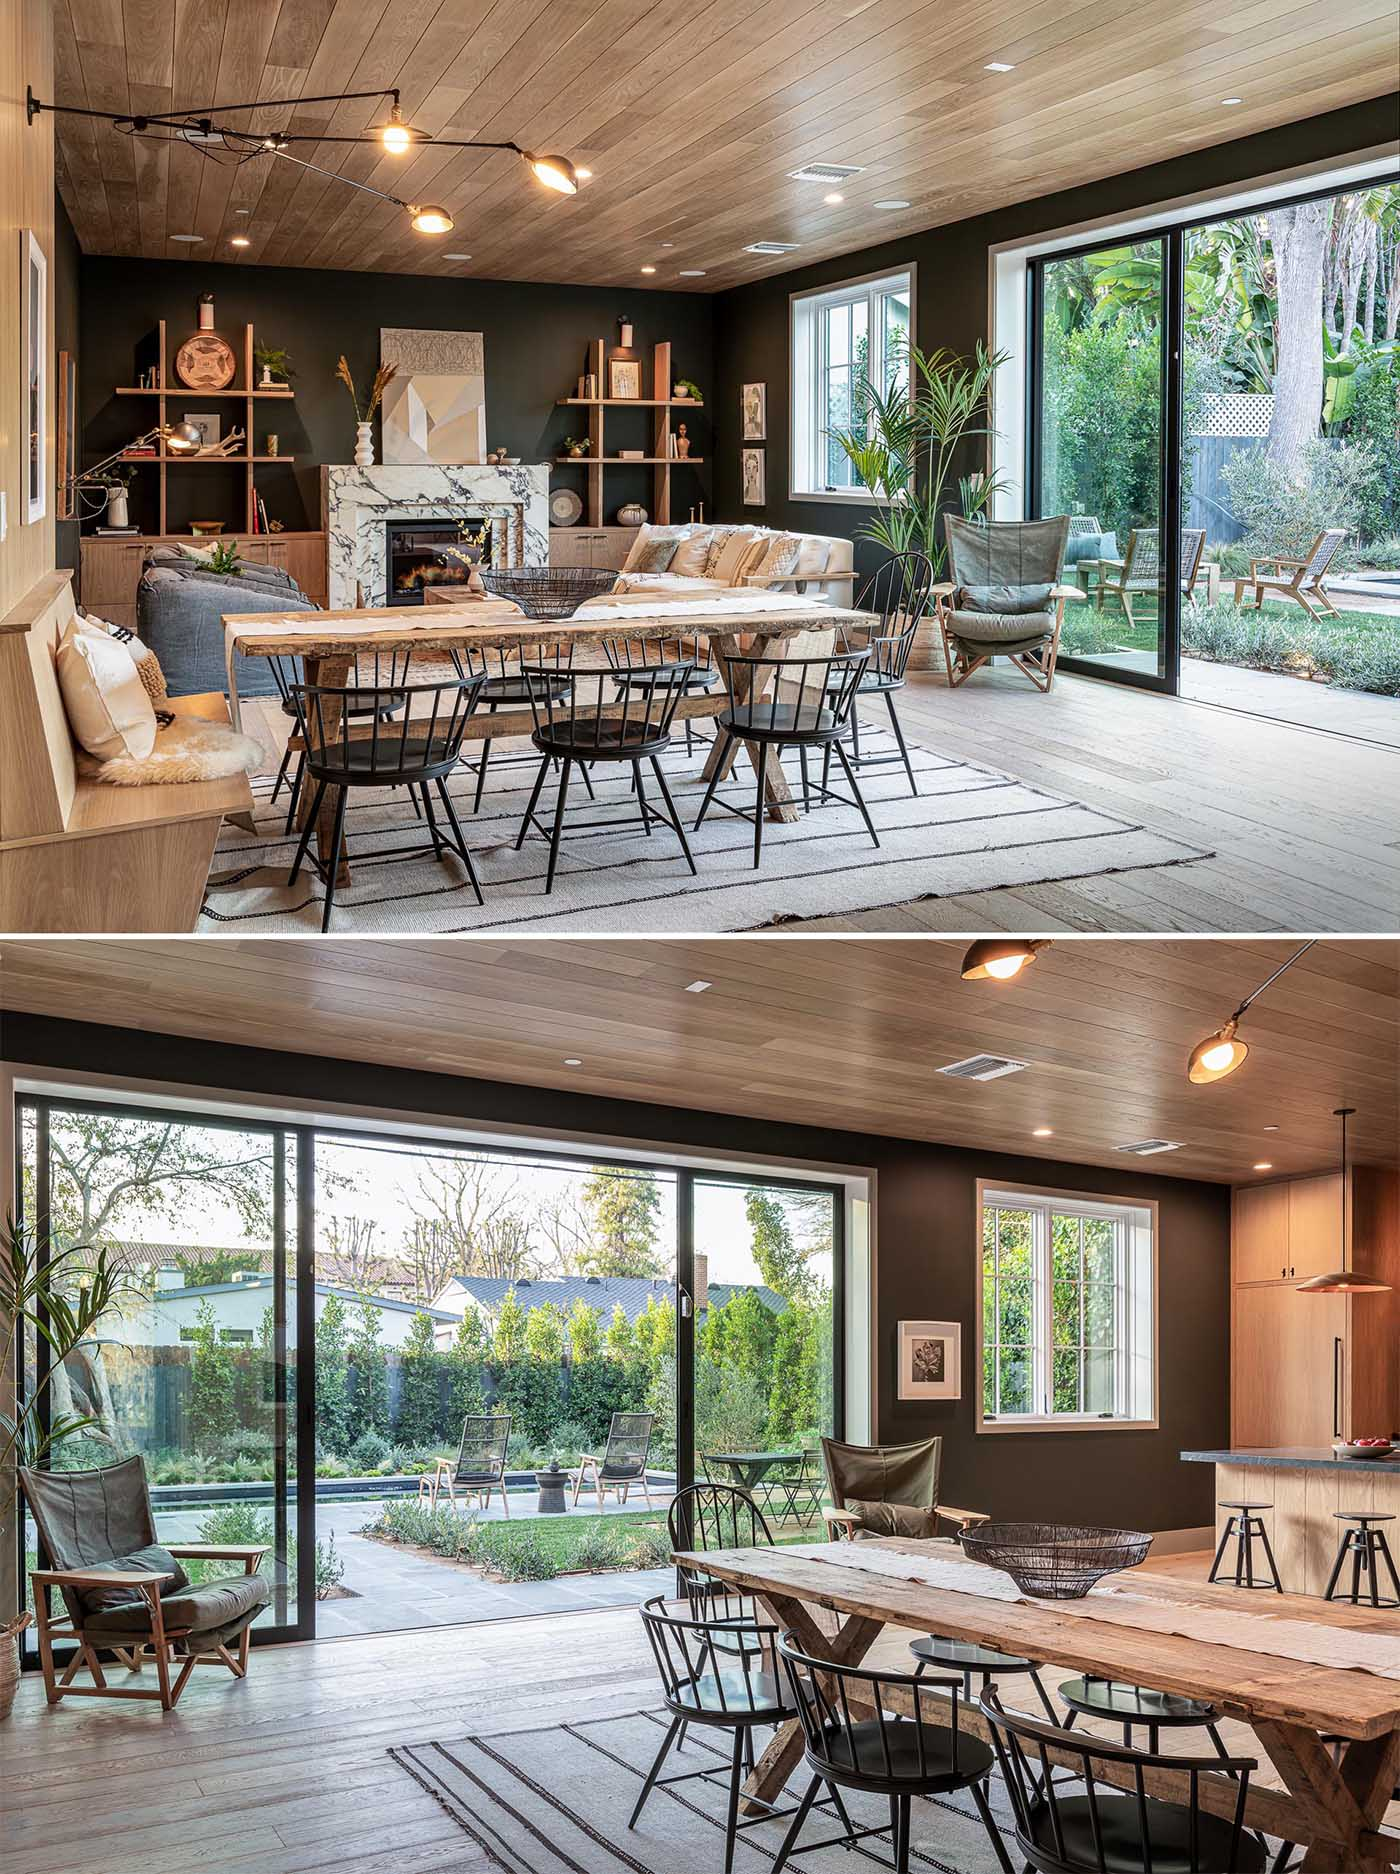 This dining area, with a wood bench at one end, separates the living room from the kitchen. Large sliding glass doors open the interior space to the yard.